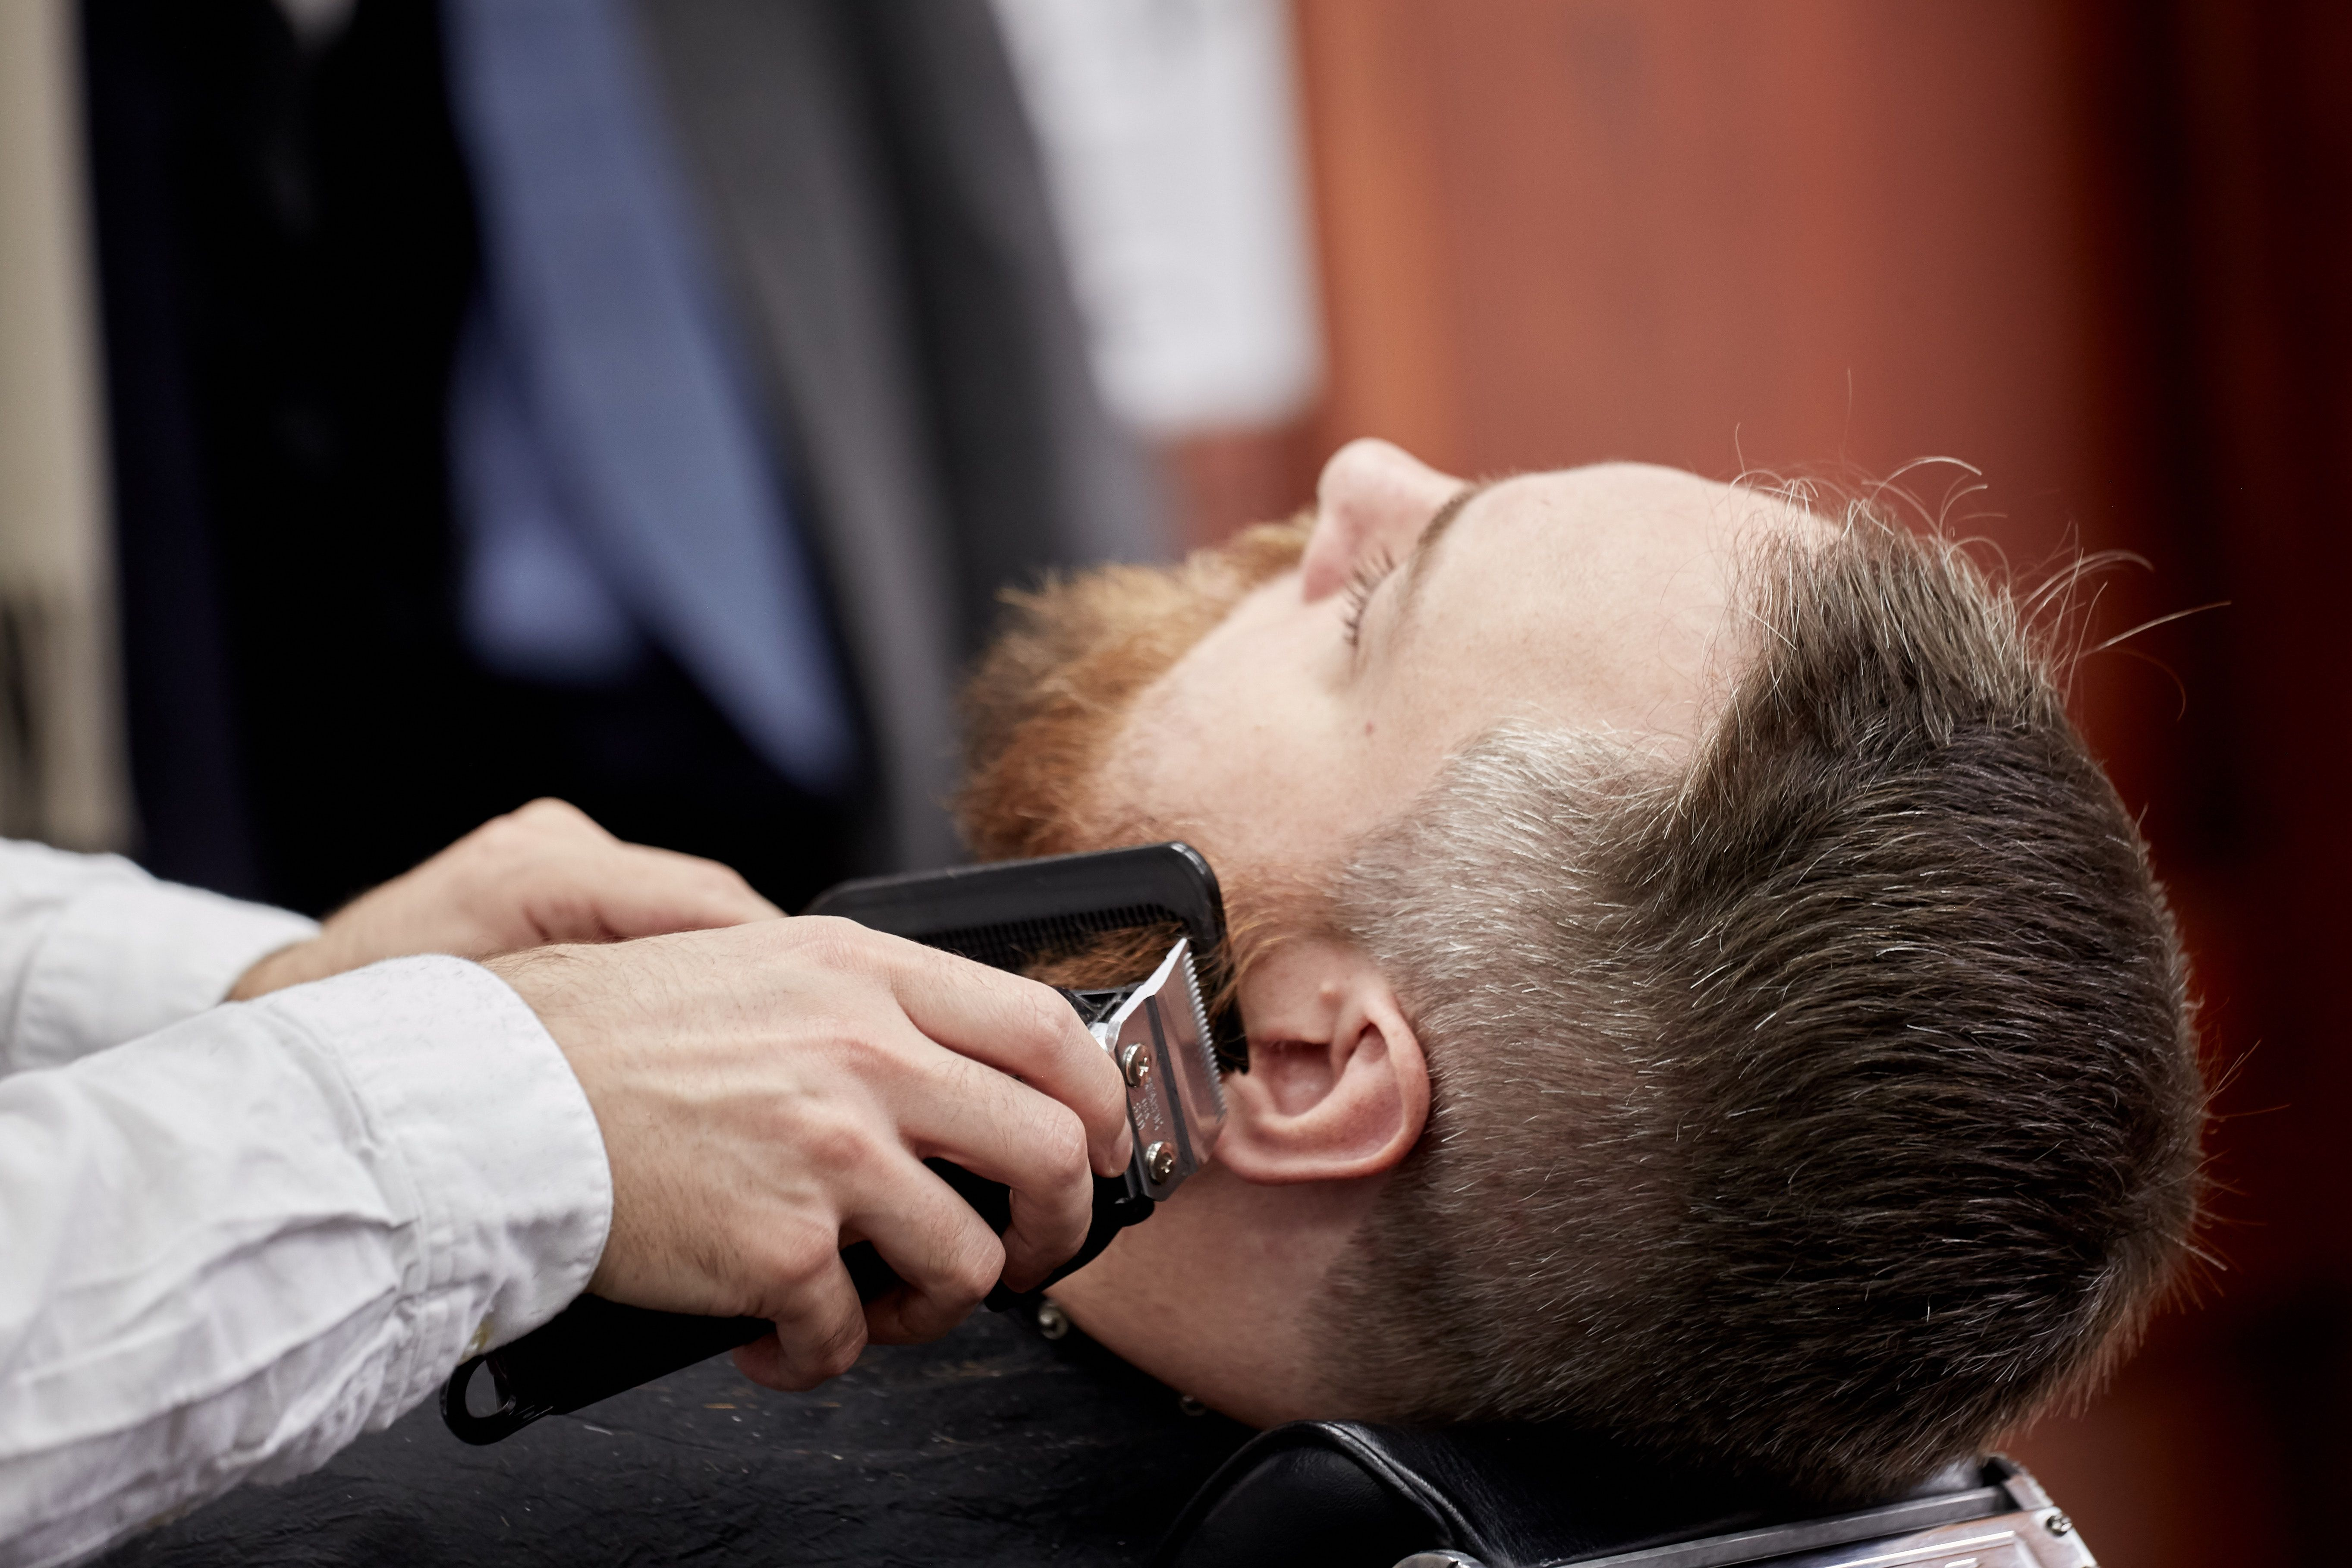 Barber Shop Nyc Best Barbers Near Midtown Nyc Best Barbers Midtown Rockefeller Barbers Near Me In 2020 Best Barber Barber Shop Nyc Barber Near Me